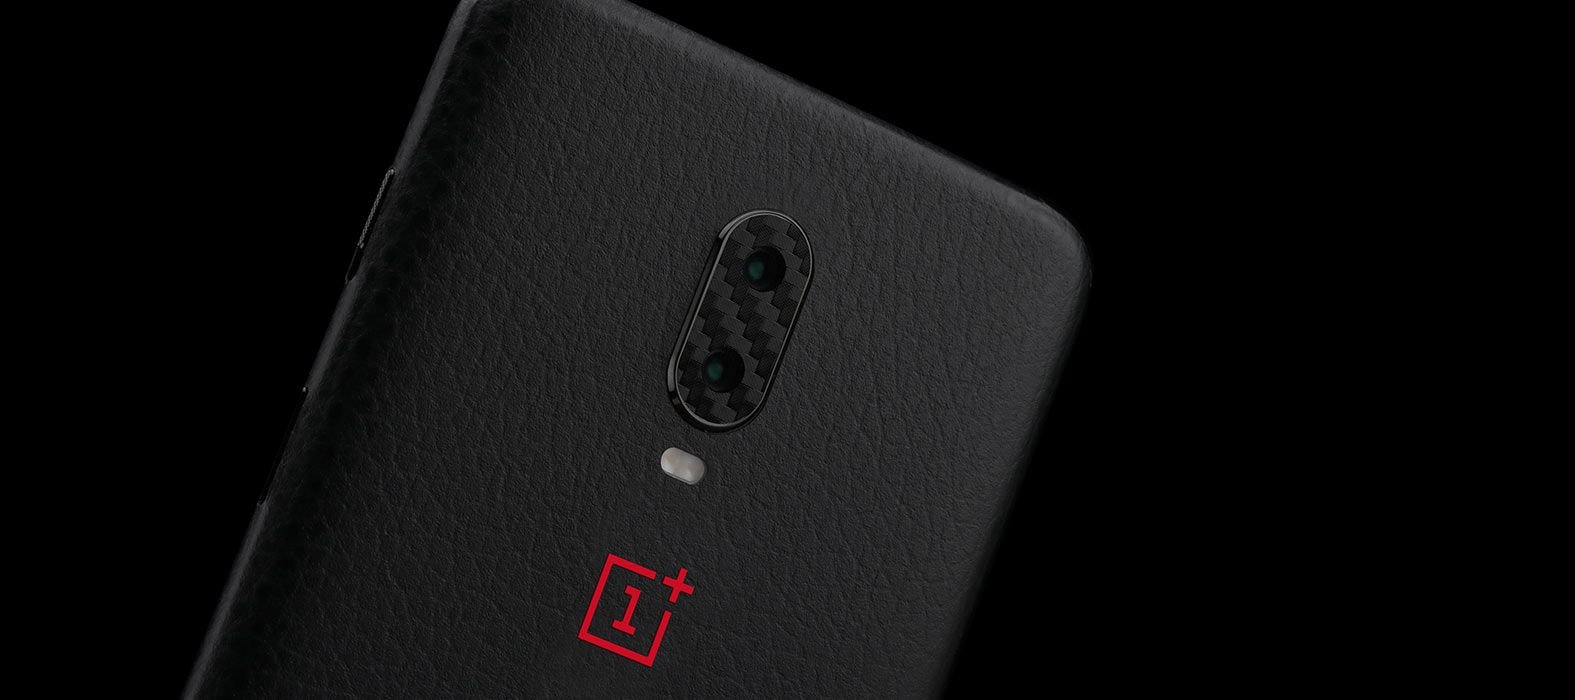 OnePlus 6T Black Leather Skins